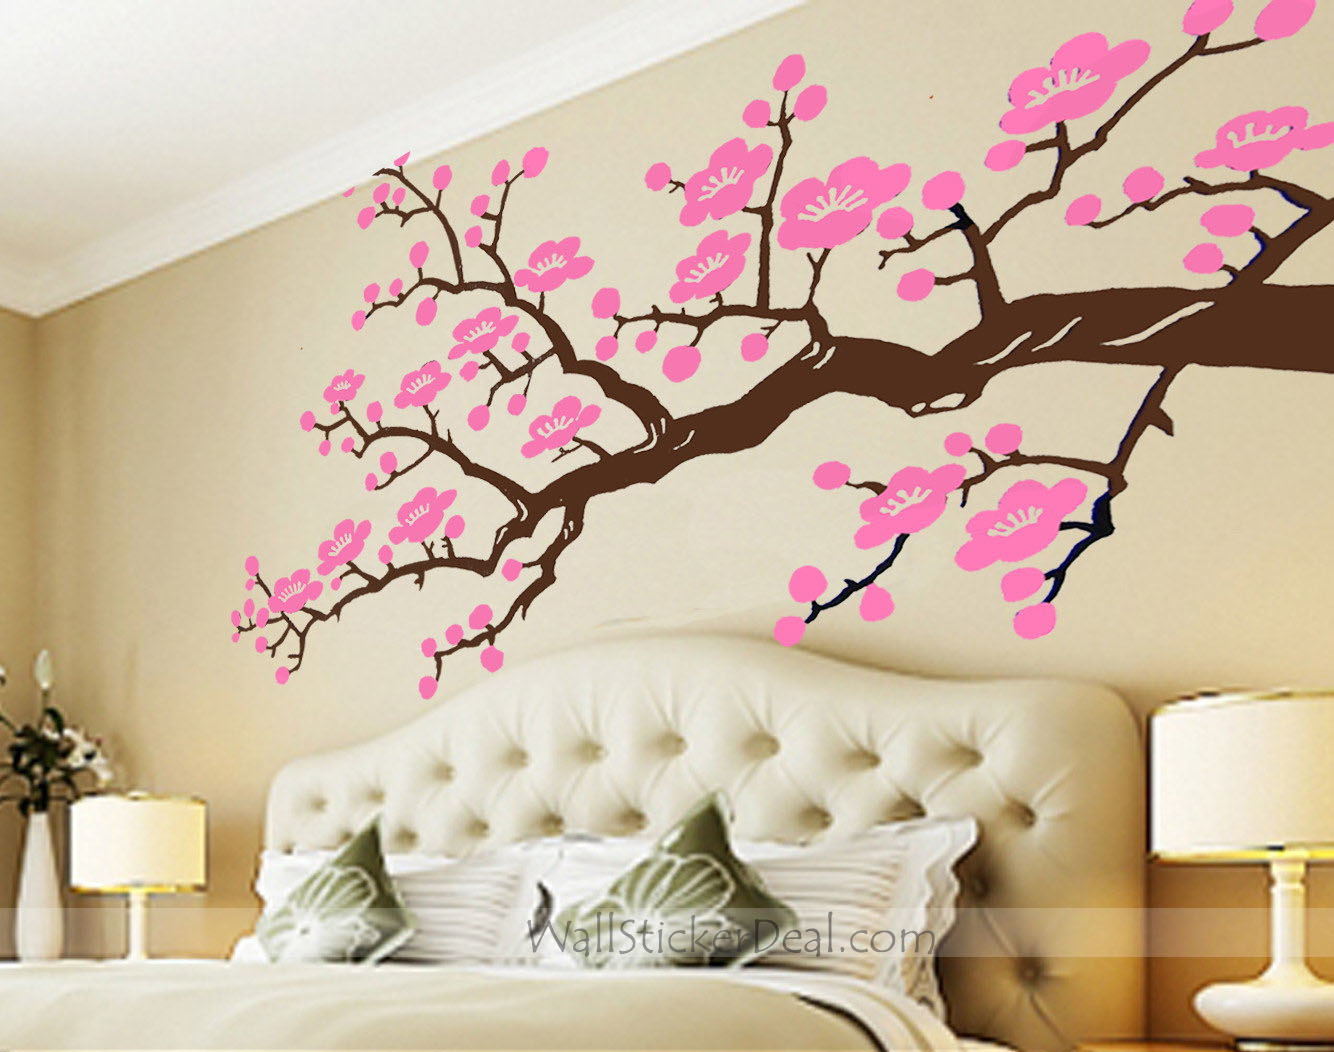 Cherry blossom wall decal with cherry blossom wall appliques with farm wall decals with wall stickers for bedrooms